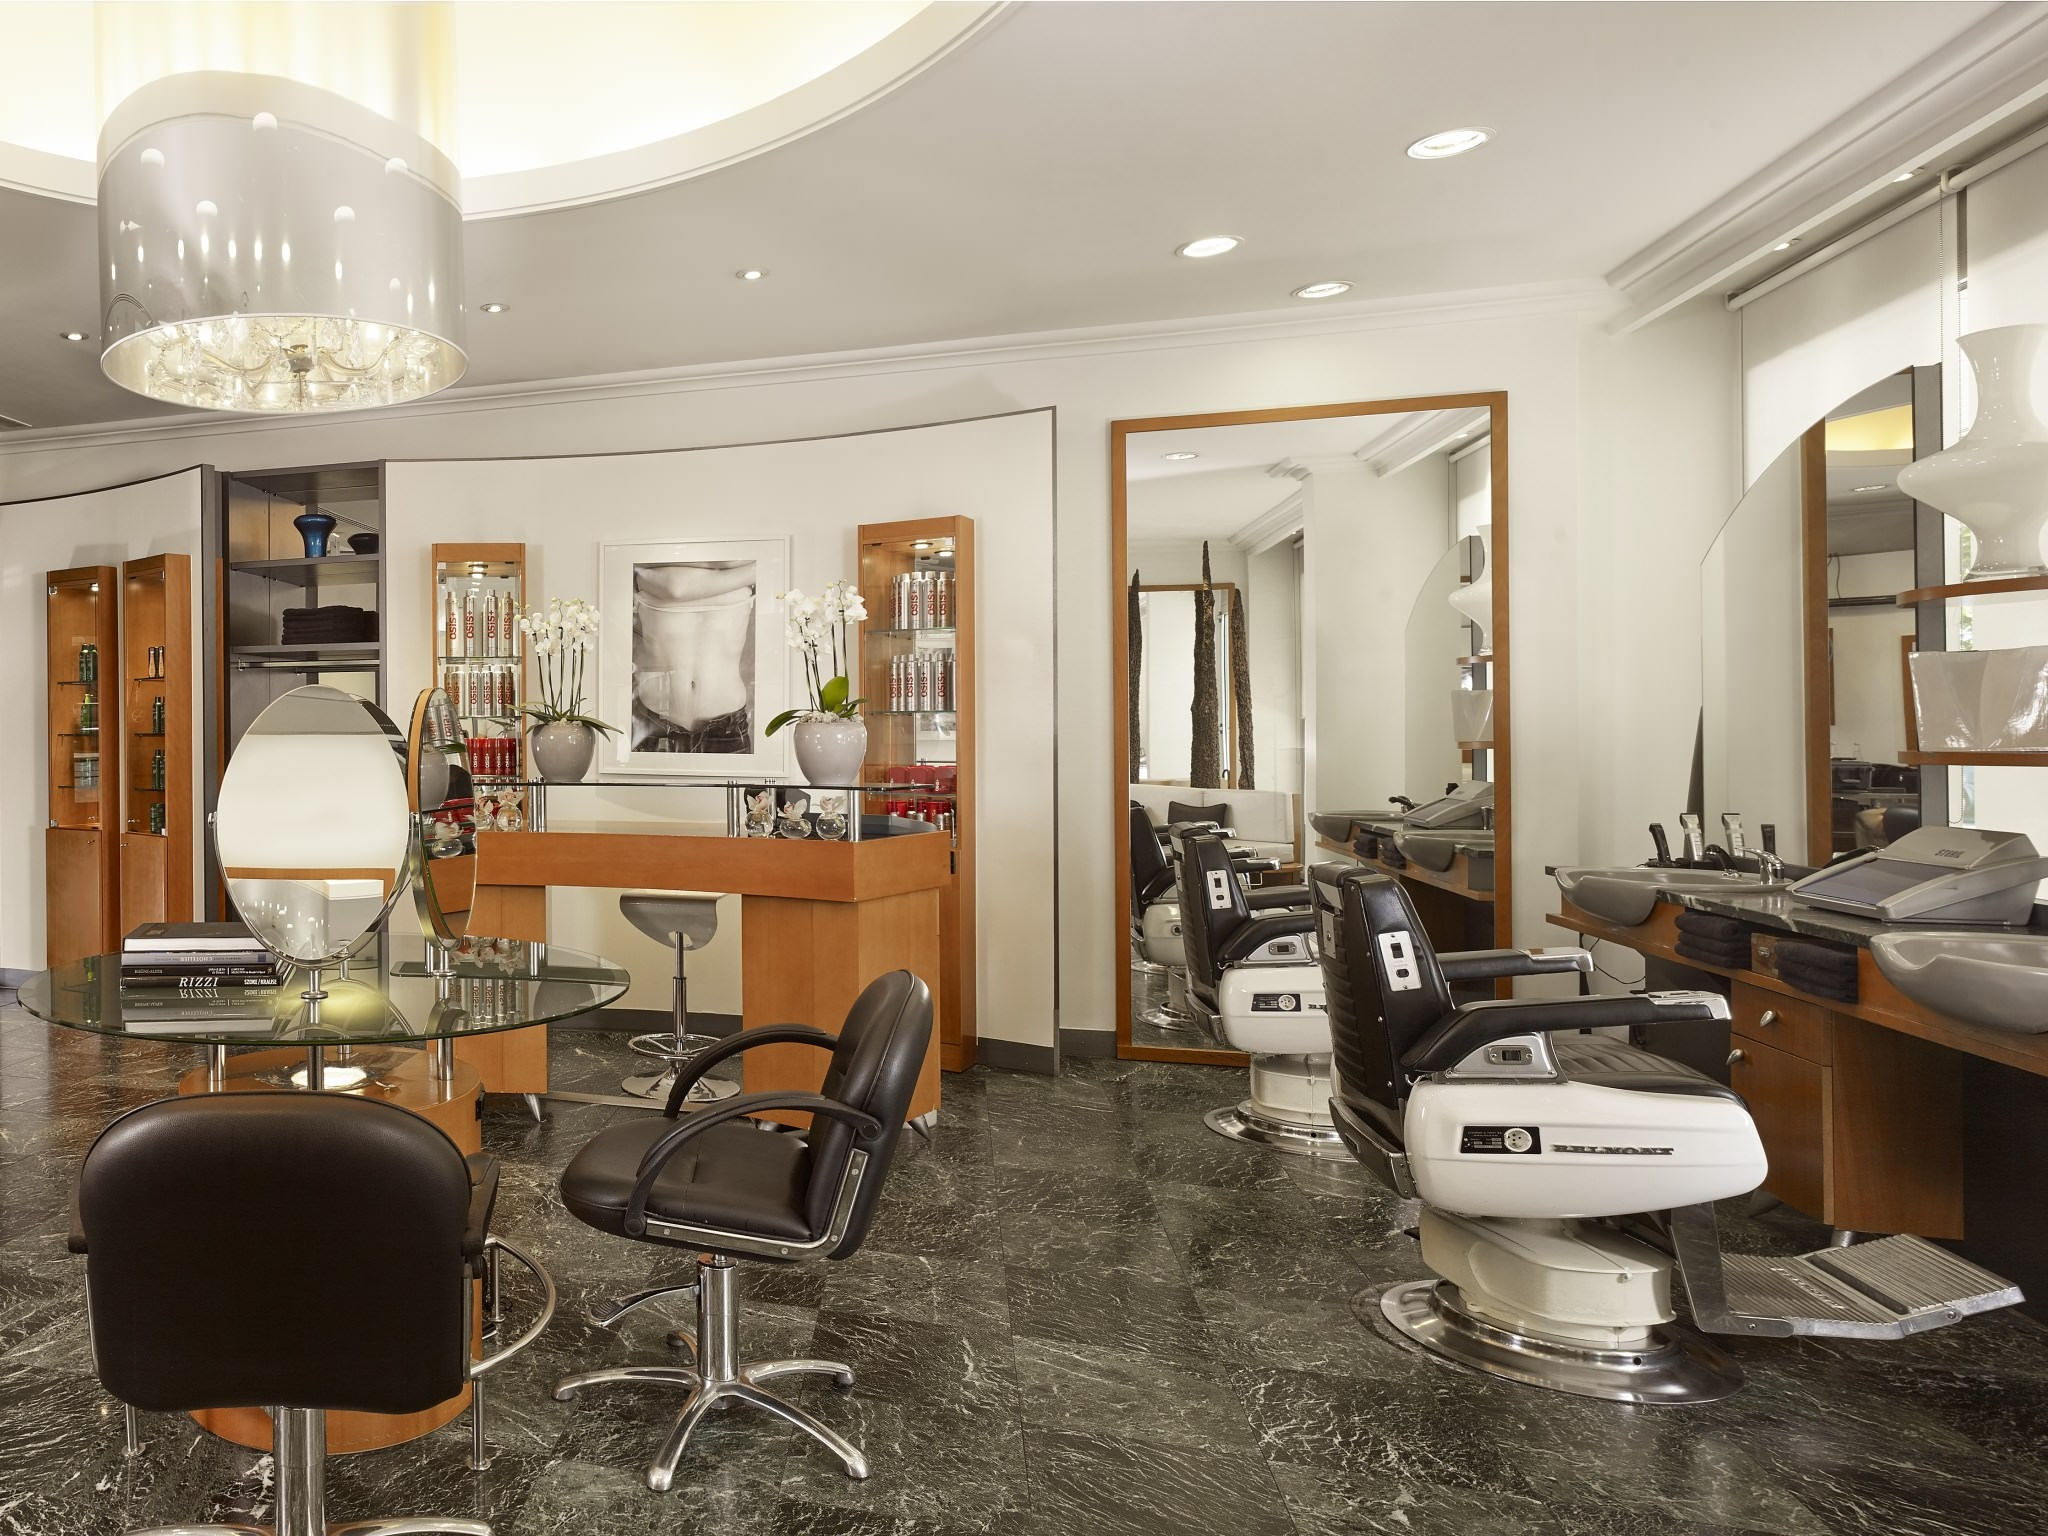 Le Salon Hairdresser Geneva